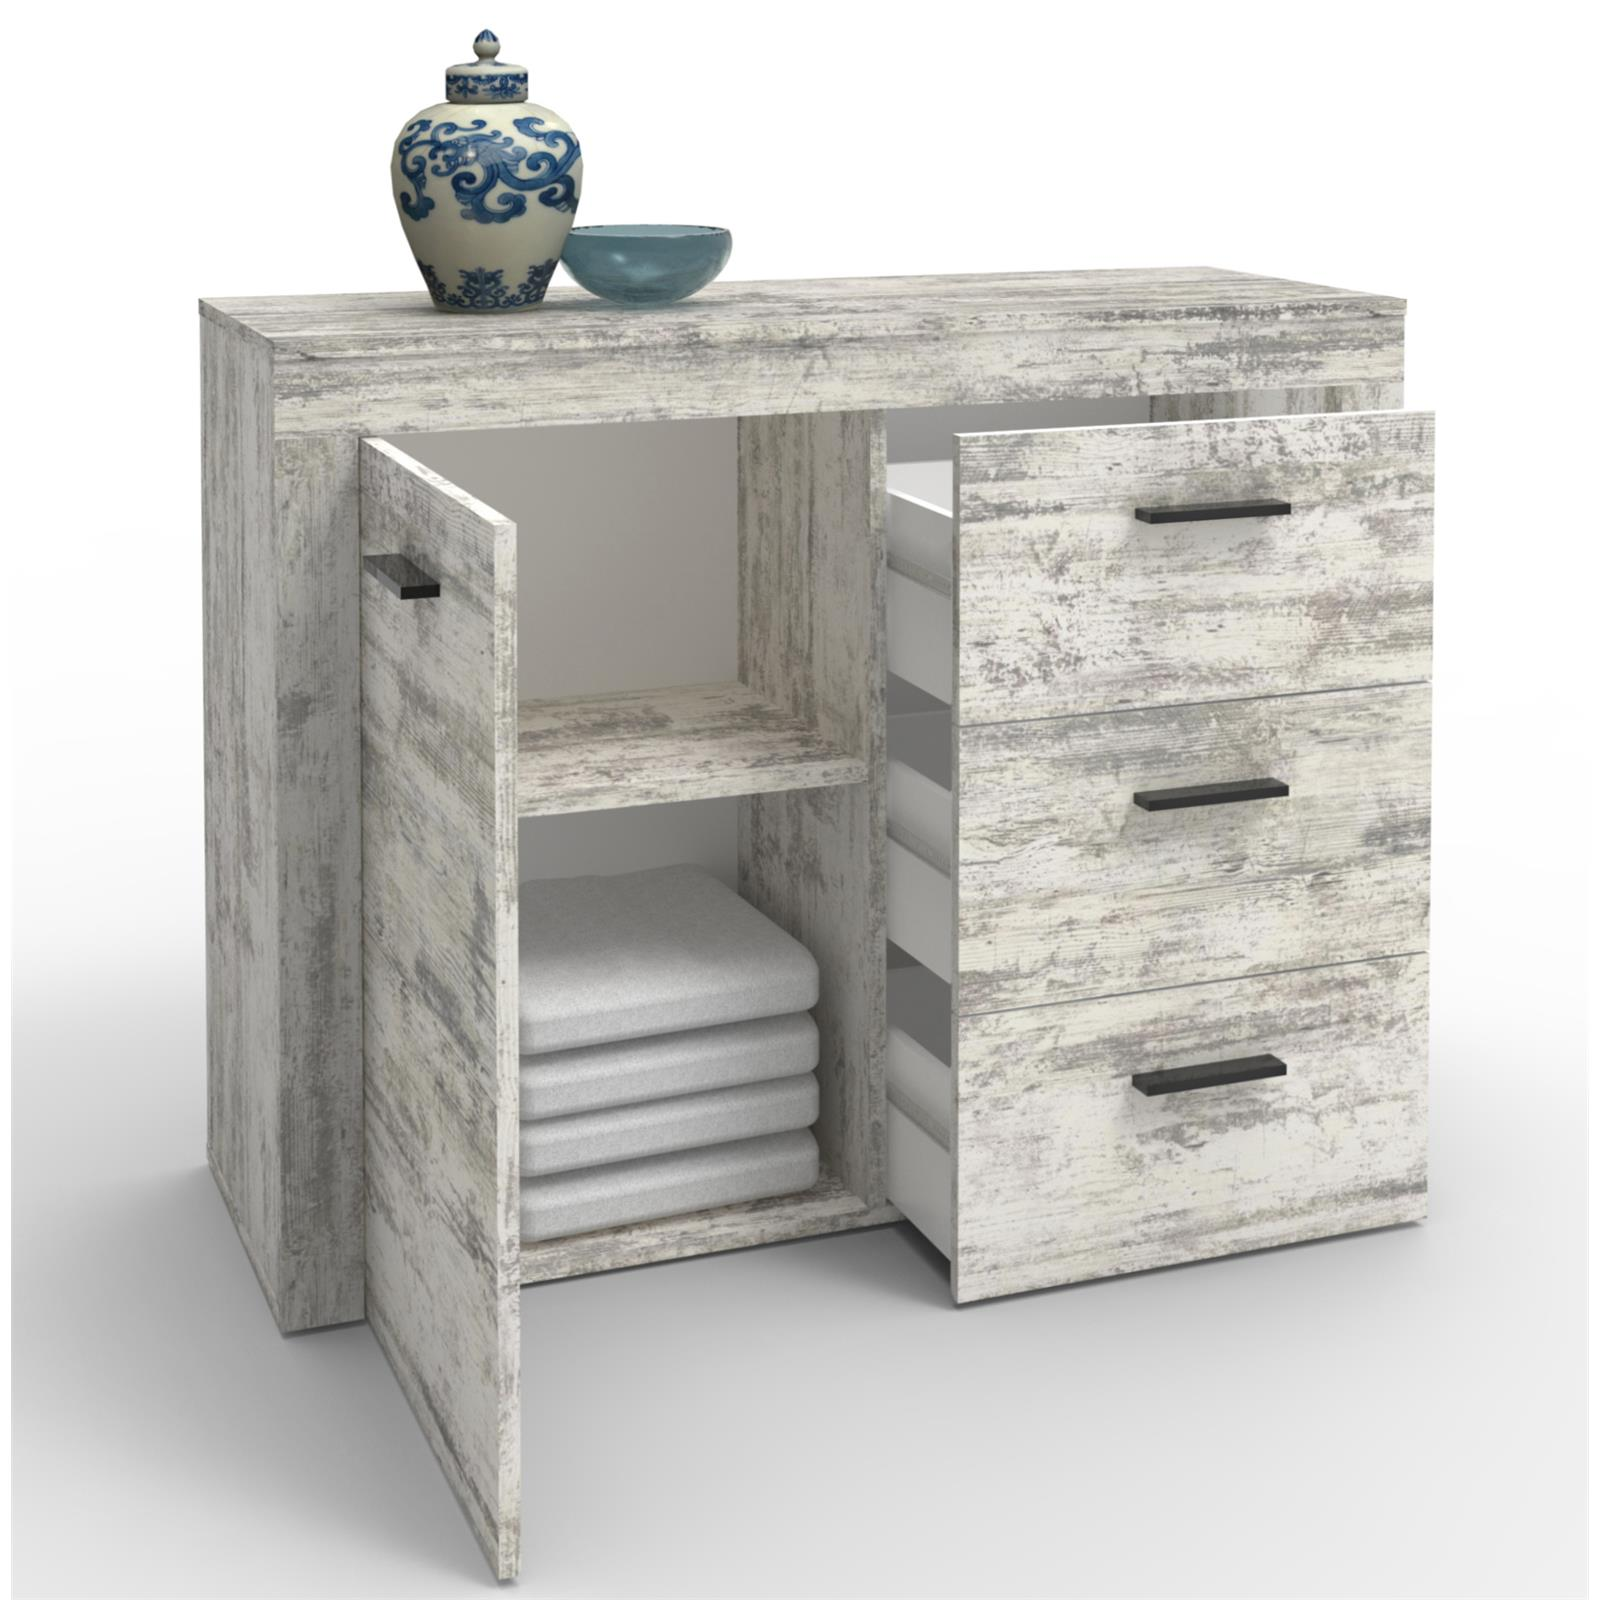 kommode sideboard highboard shabby chic oder sonoma eiche 110 cm 3 schubladen ebay. Black Bedroom Furniture Sets. Home Design Ideas